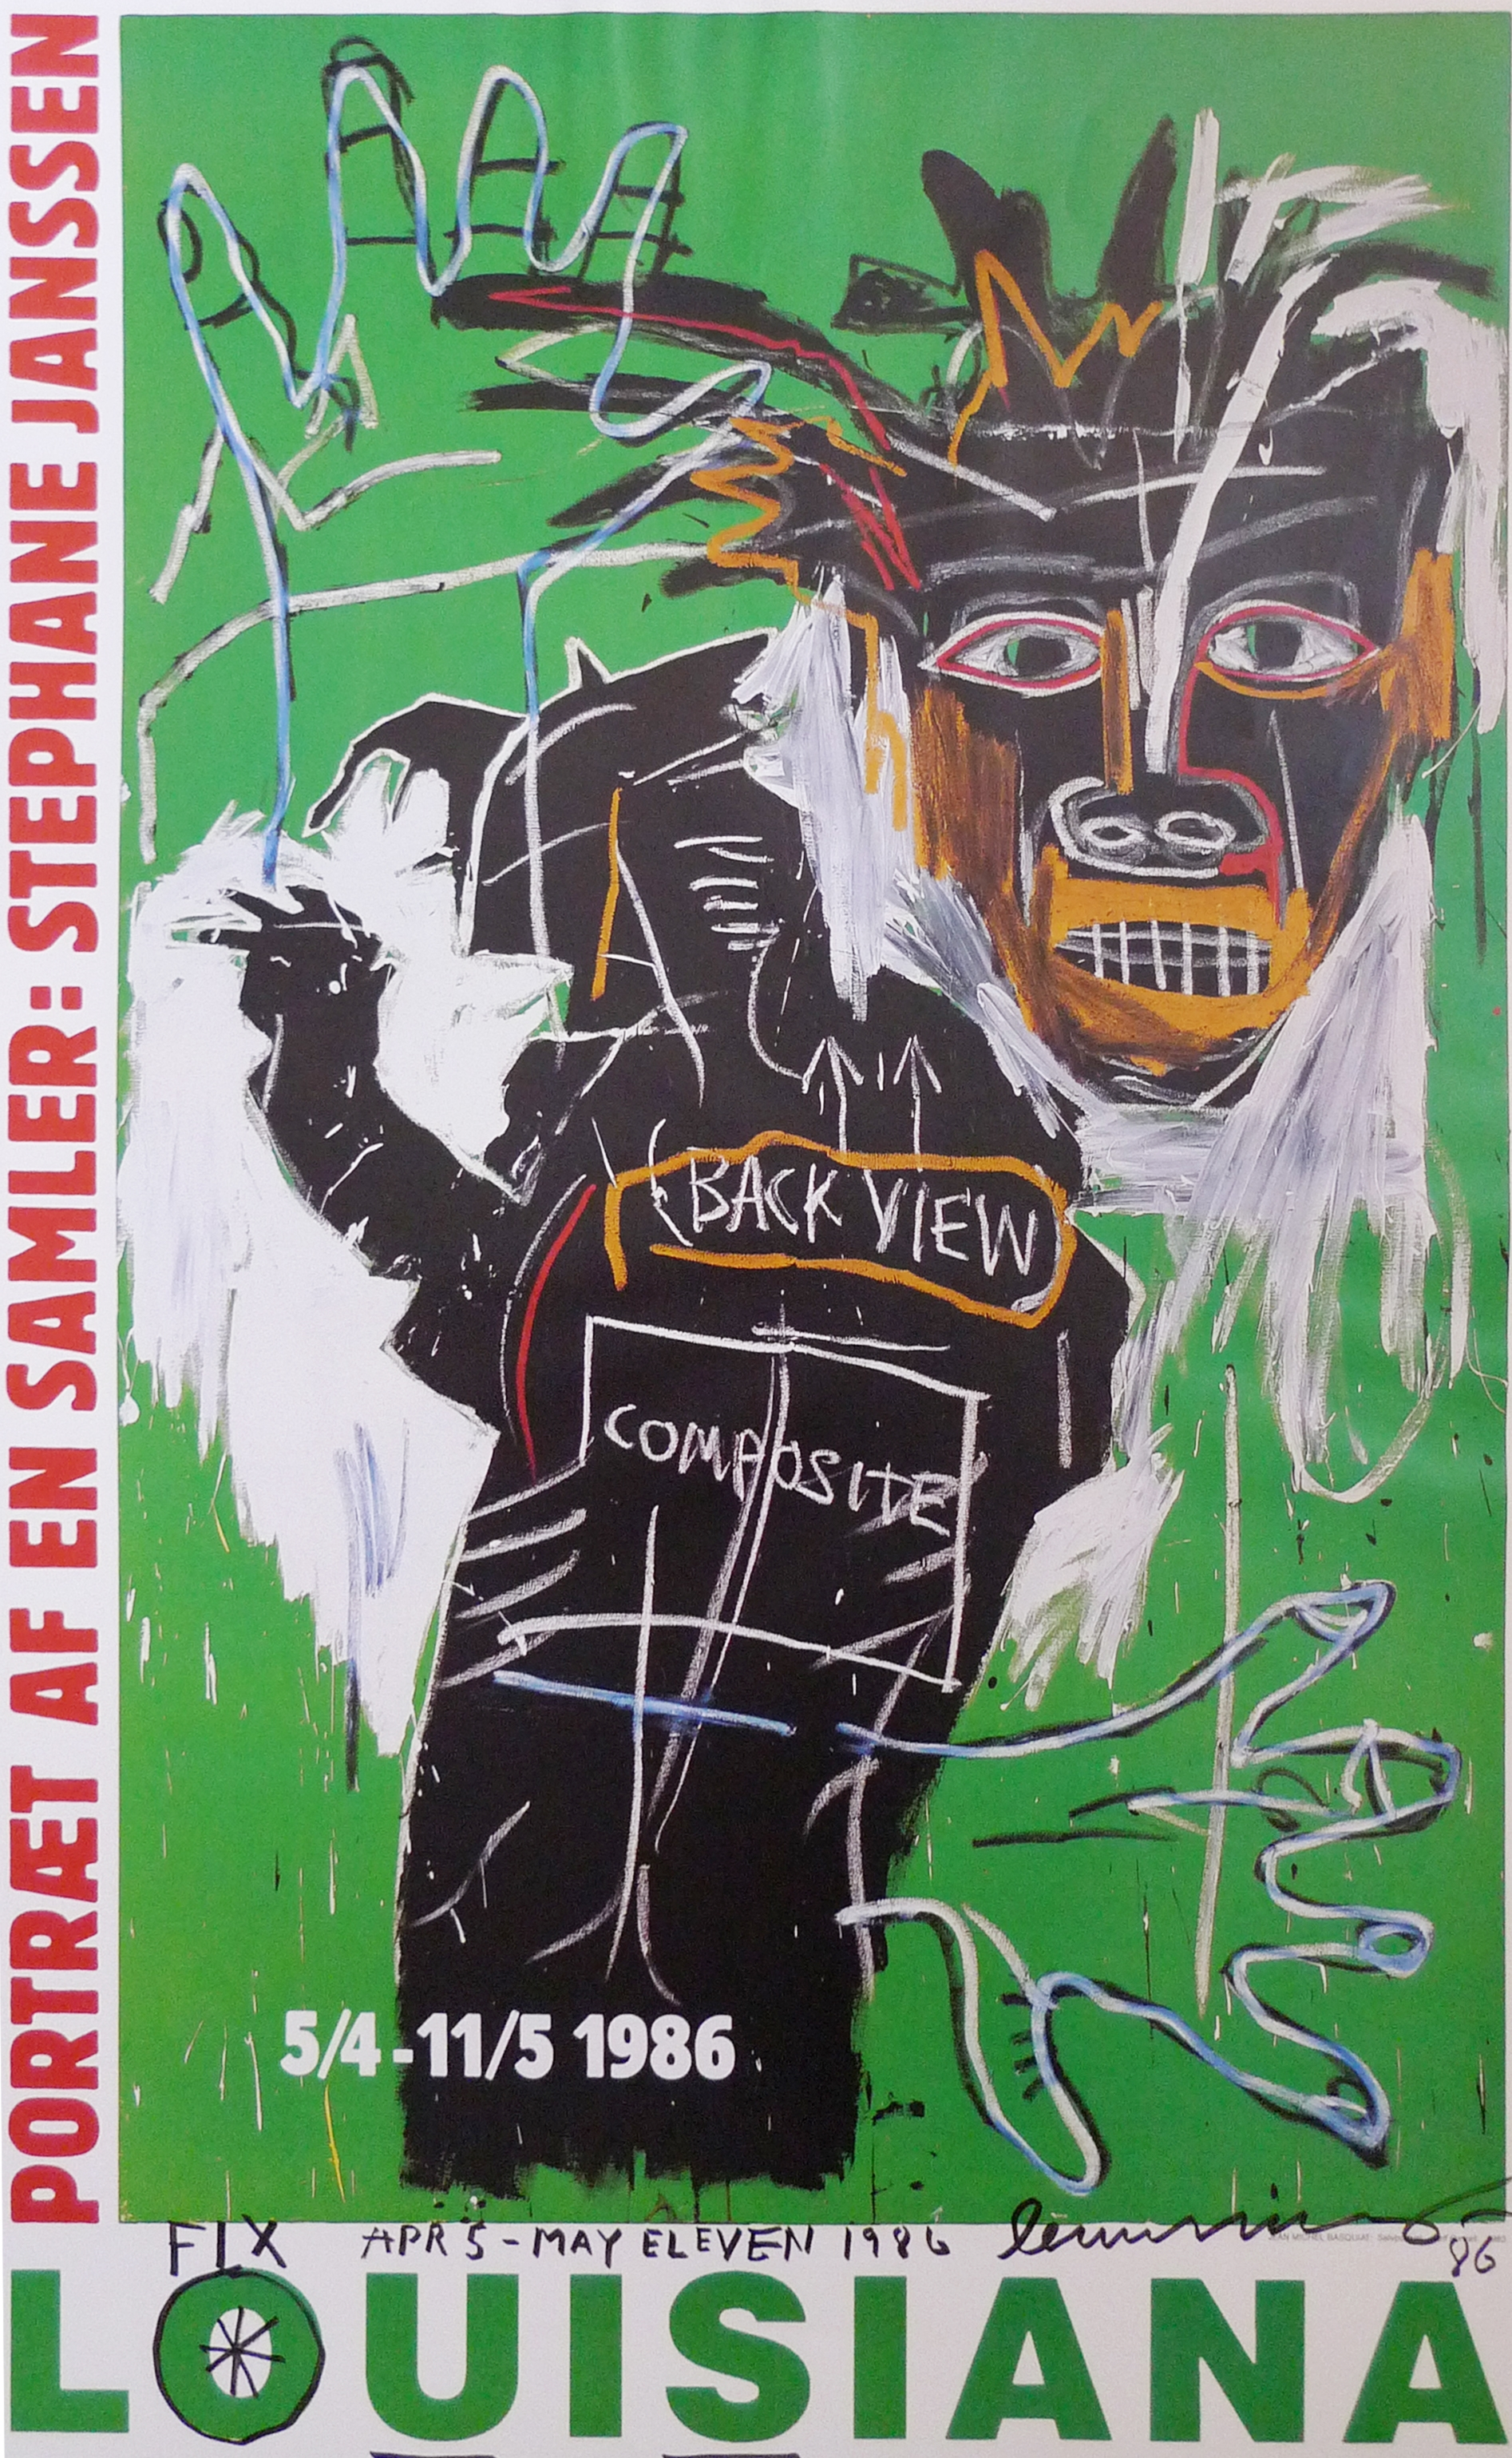 Jean-Michel Basquiat, Portrait of a Collector: Stephane Janssen